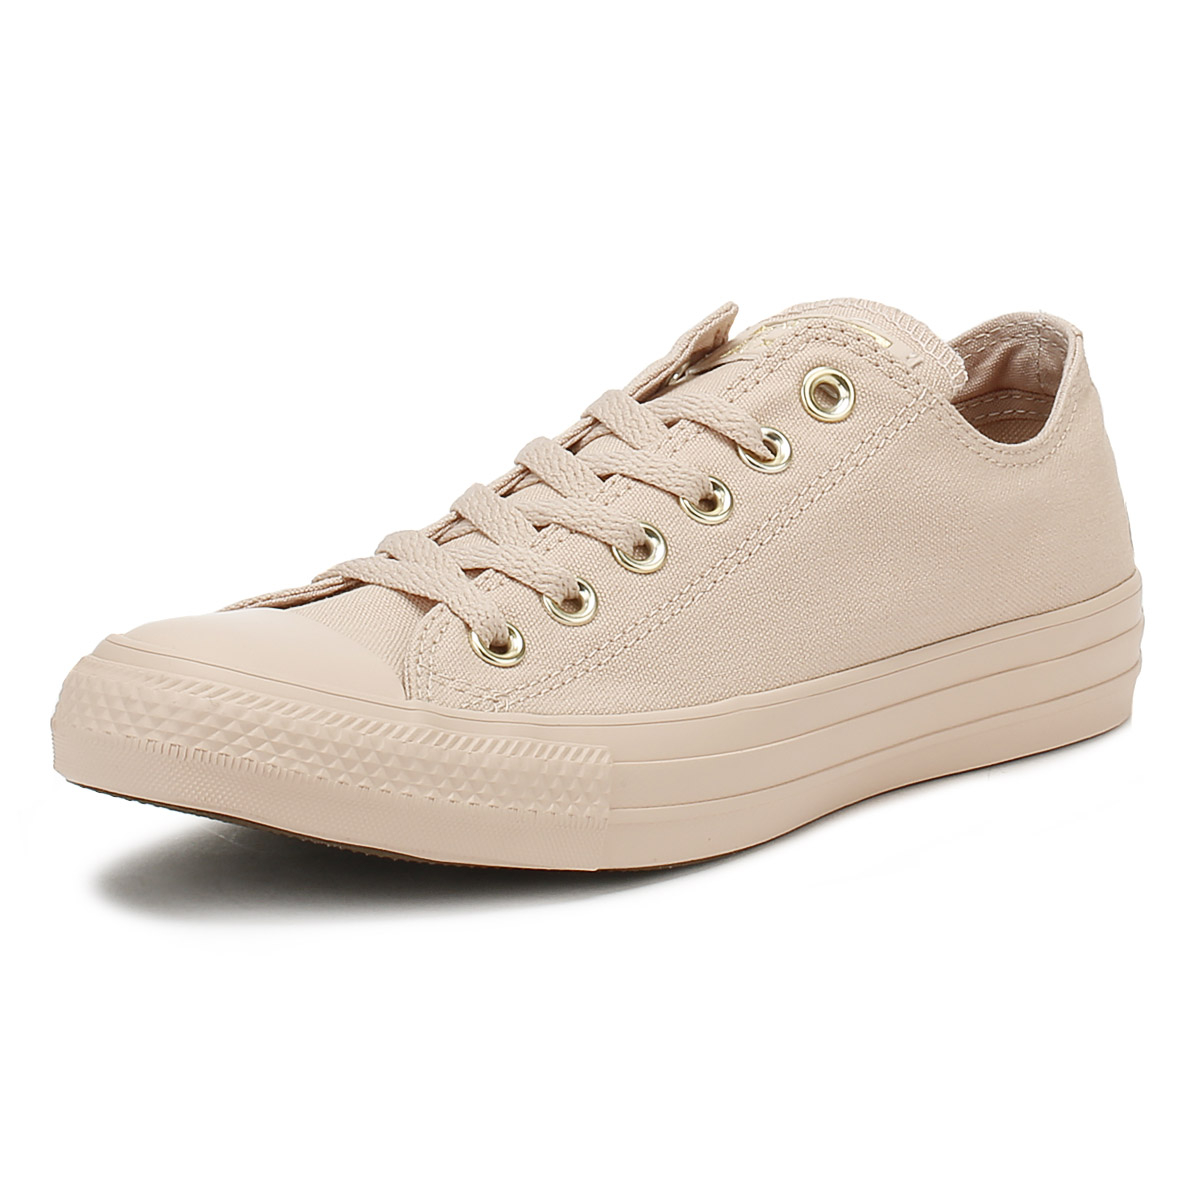 bdcfb29b10ca Details about Converse Chuck Taylor All Star Womens Ox Trainers Particle  Beige Lace Up Shoes